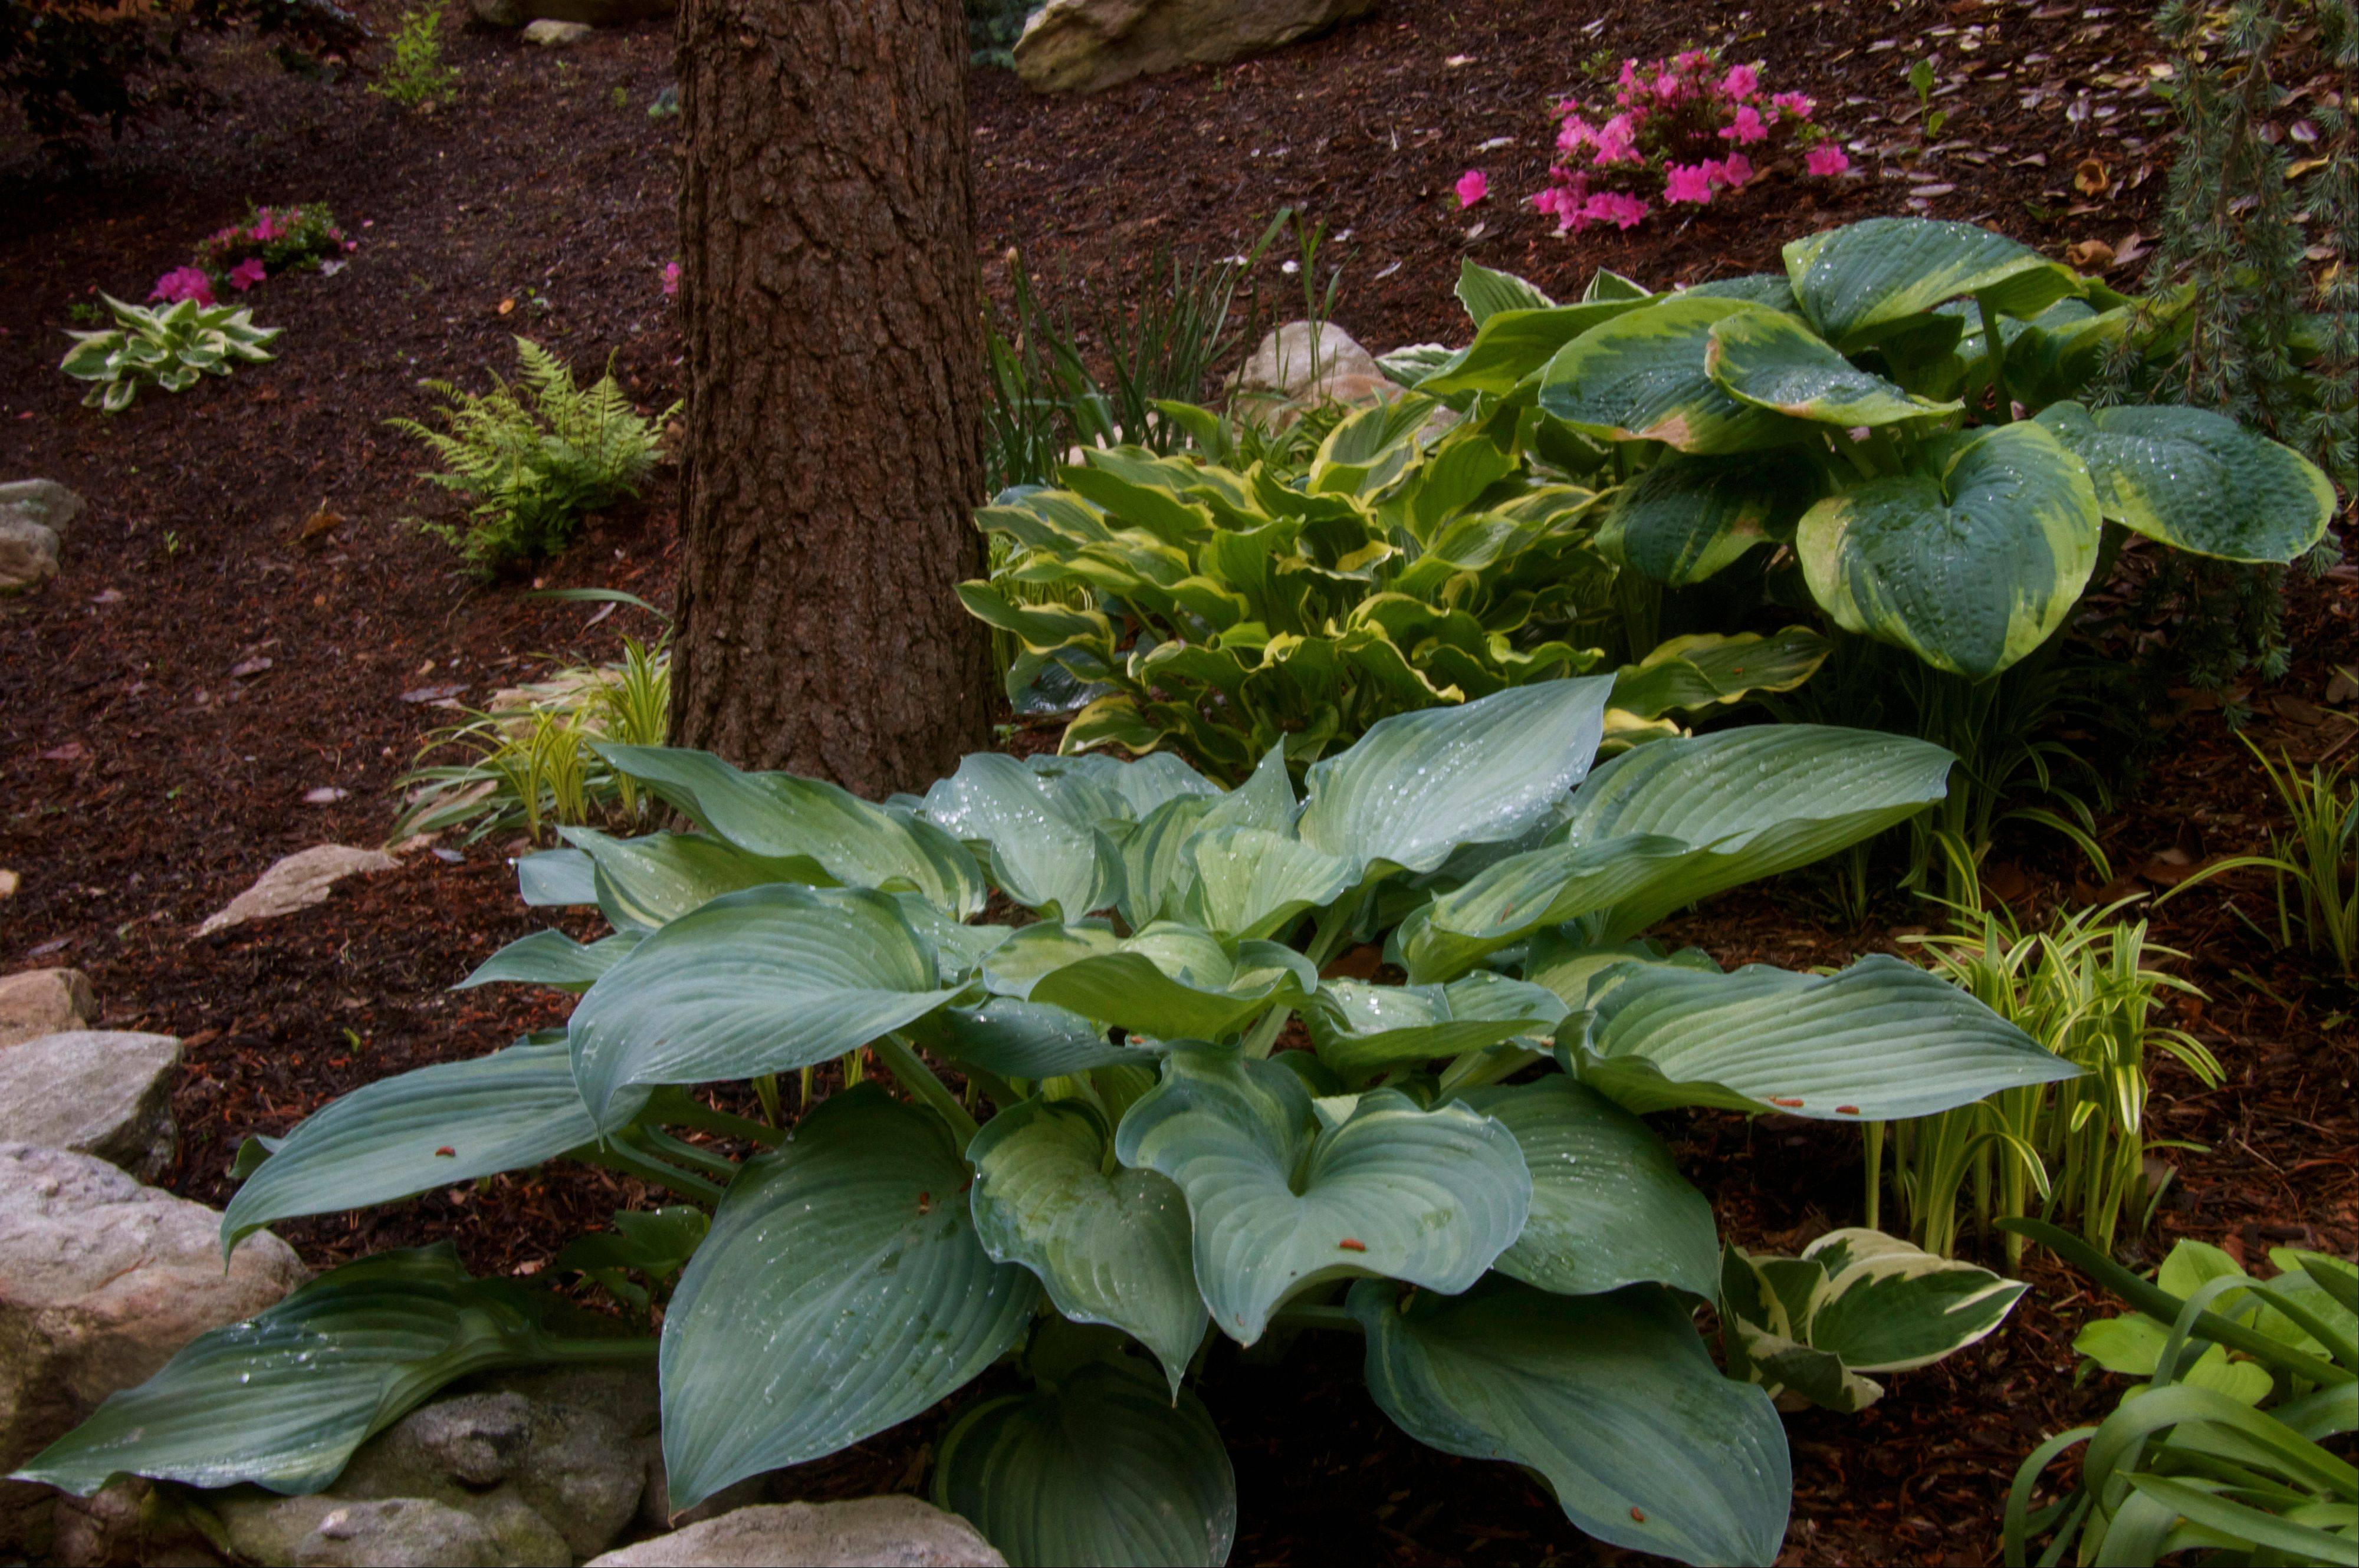 Hostas are a great multiuse option for growers who like flowers that taste as good as they look. Their blooms can be used to enhance the family menu along with other such appetizing ornamentals as day lilies, dandelions, marigolds and begonias.